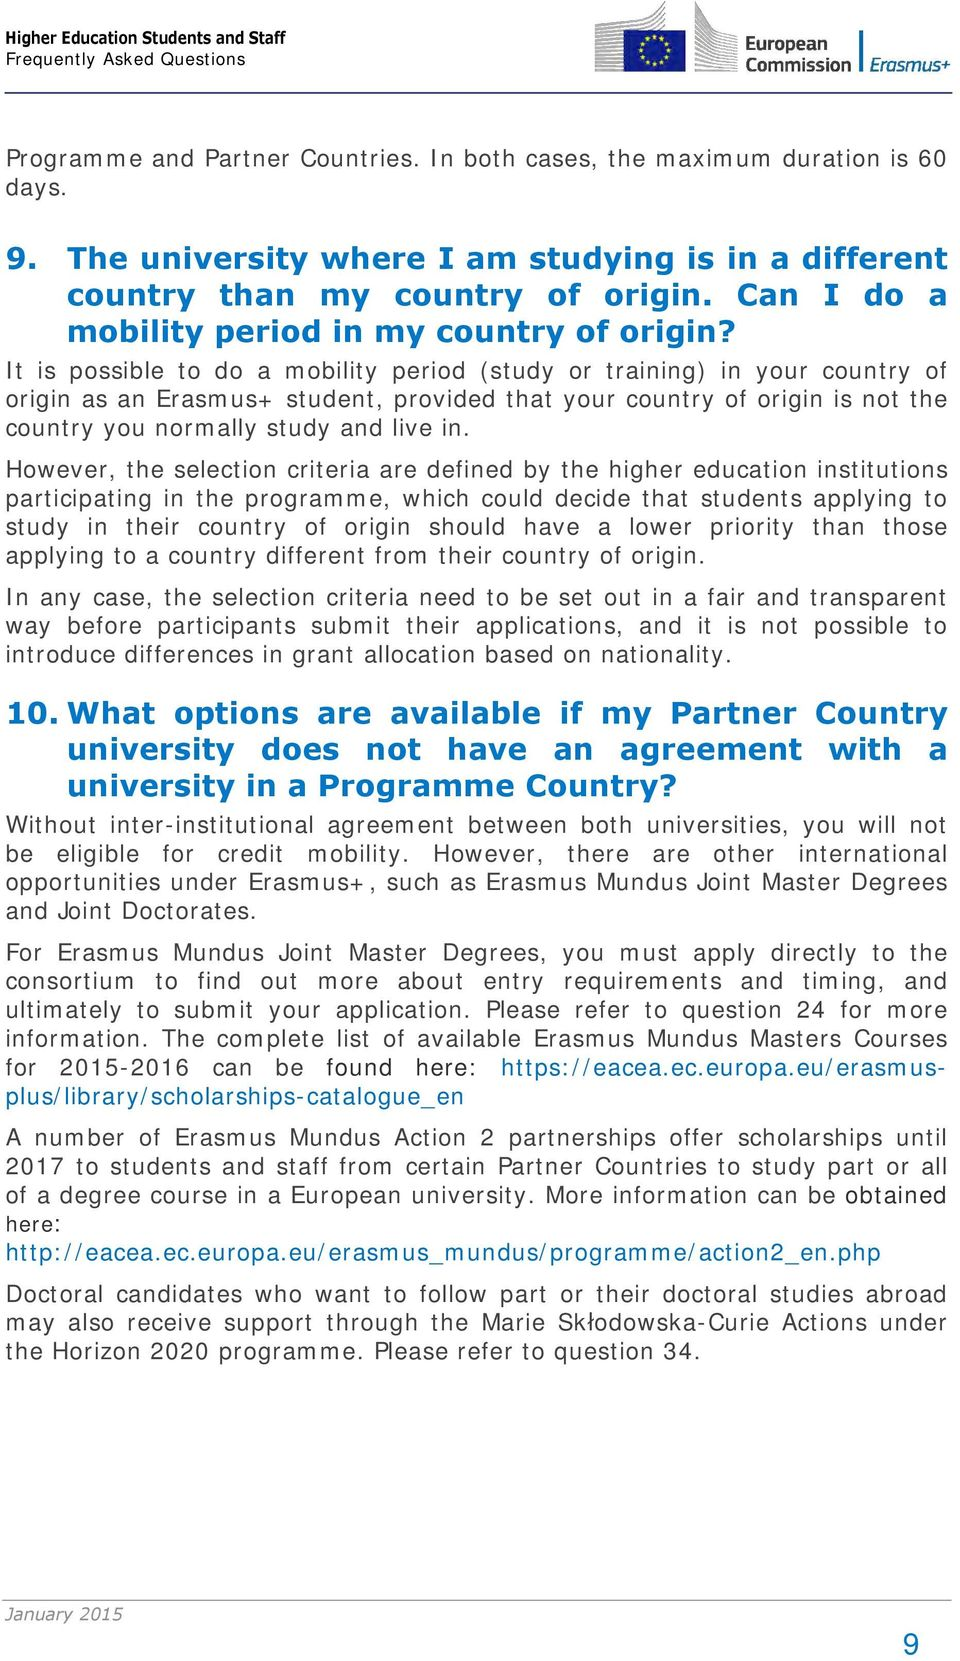 It is possible to do a mobility period (study or training) in your country of origin as an Erasmus+ student, provided that your country of origin is not the country you normally study and live in.